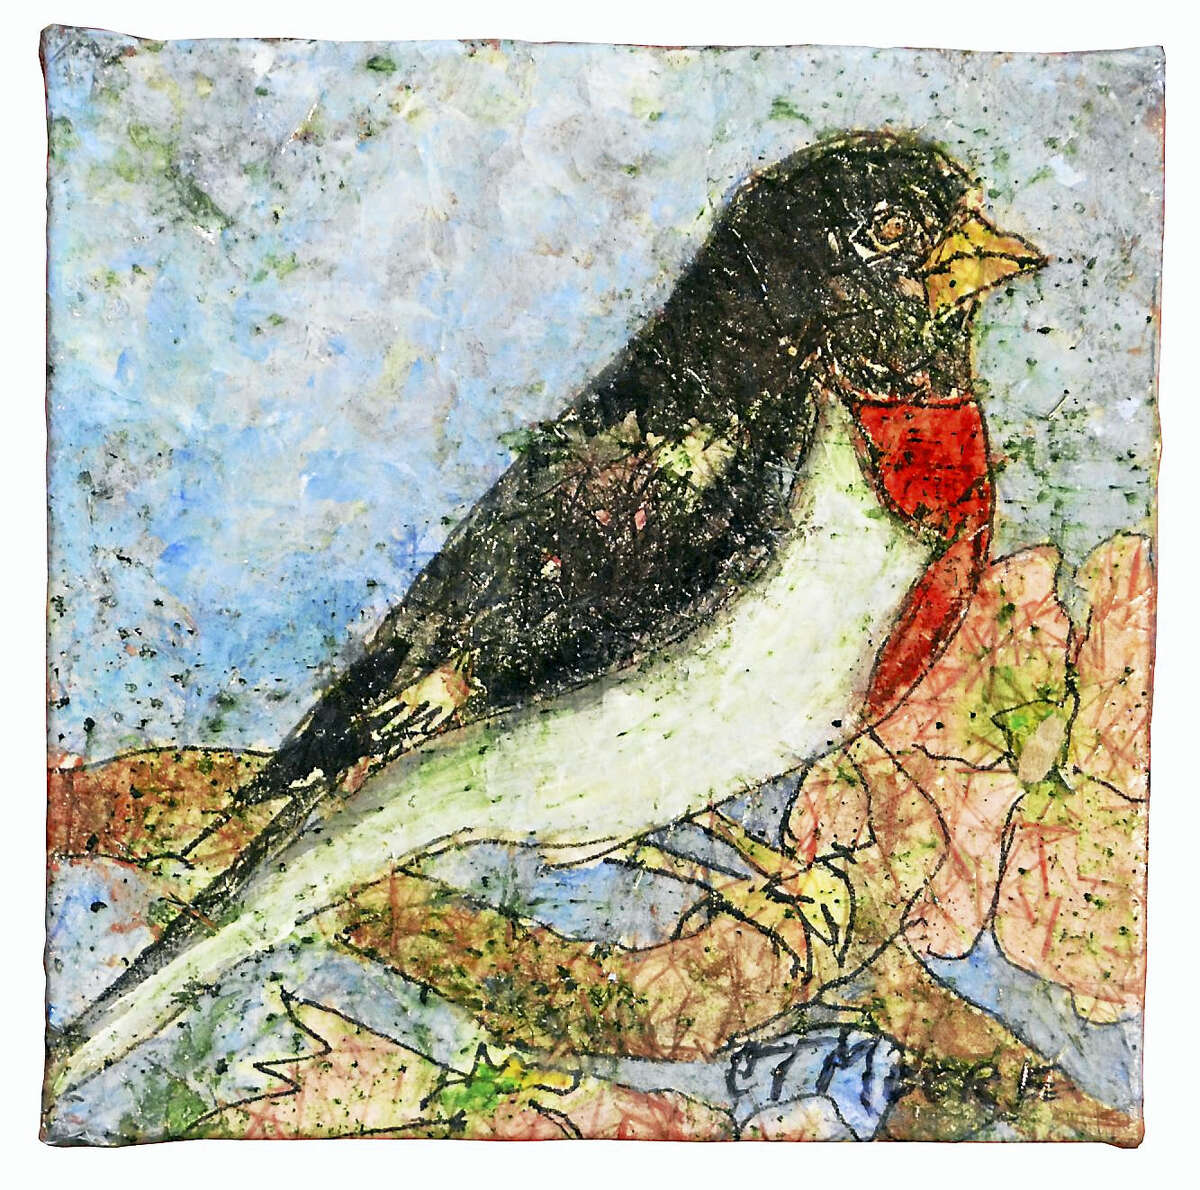 Carol Moore, a well-known artist from Bantam, is the featured artist in the Oliver Wolcott Library gallery for the months of May and June.